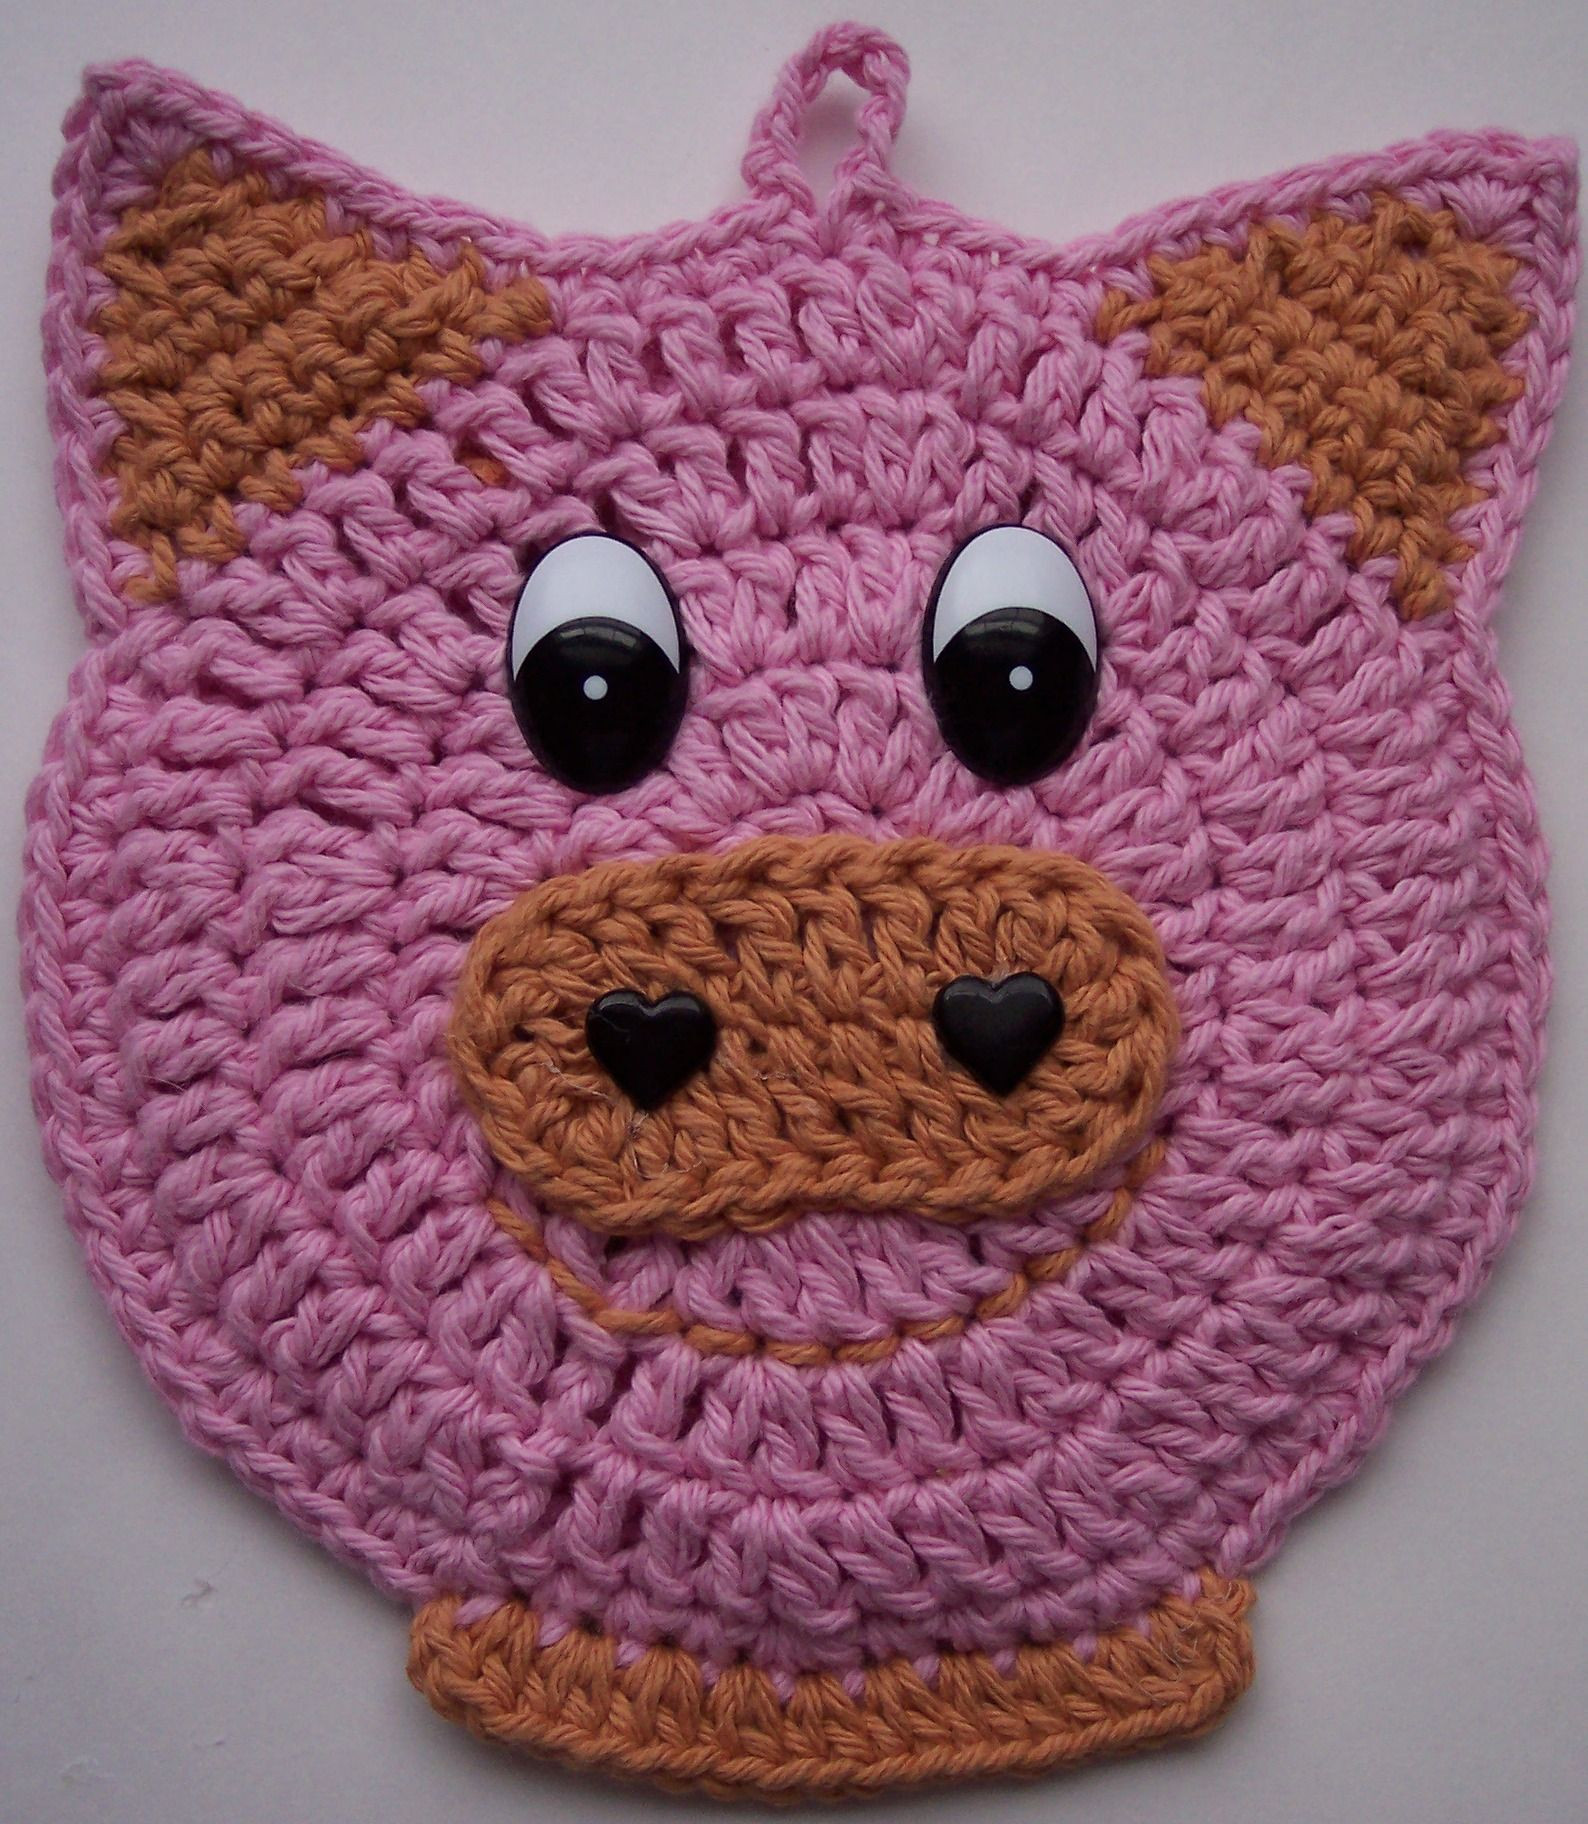 Crochet Pig Pattern Awesome Crochet Pig Potholder Crochet 4 Pinterest Of Adorable 49 Models Crochet Pig Pattern